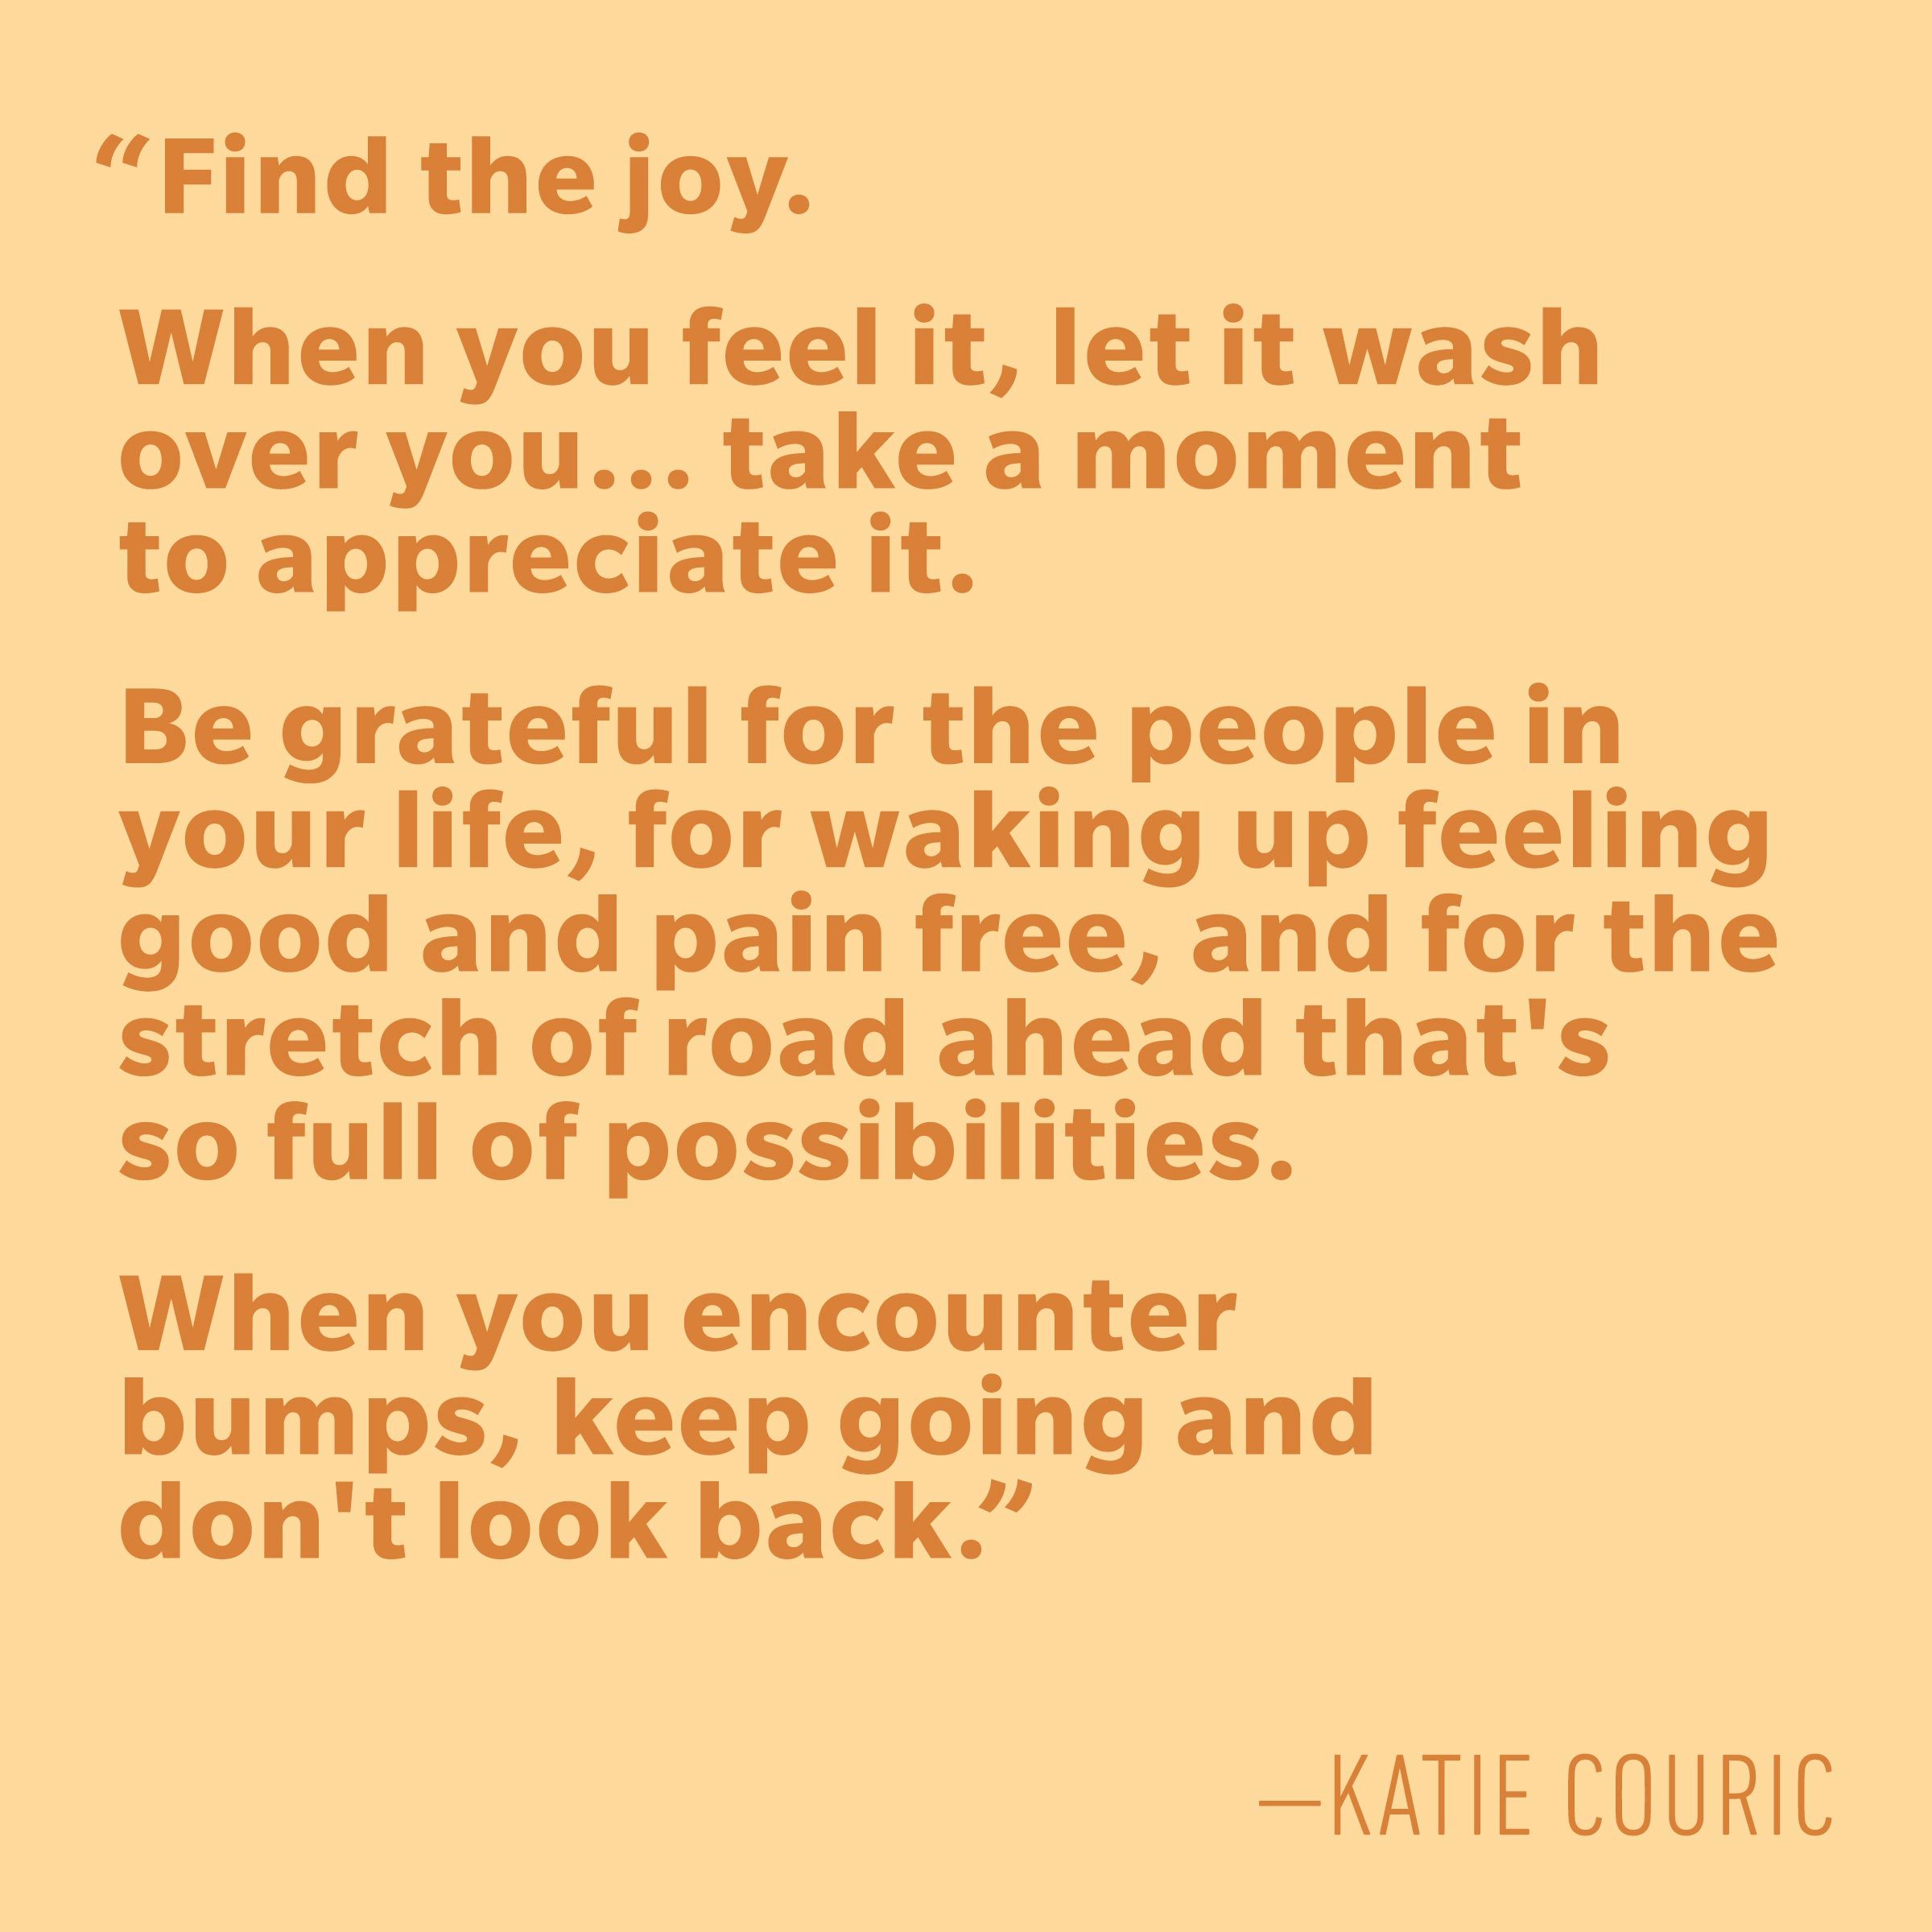 Motivational quotes - Katie Couric